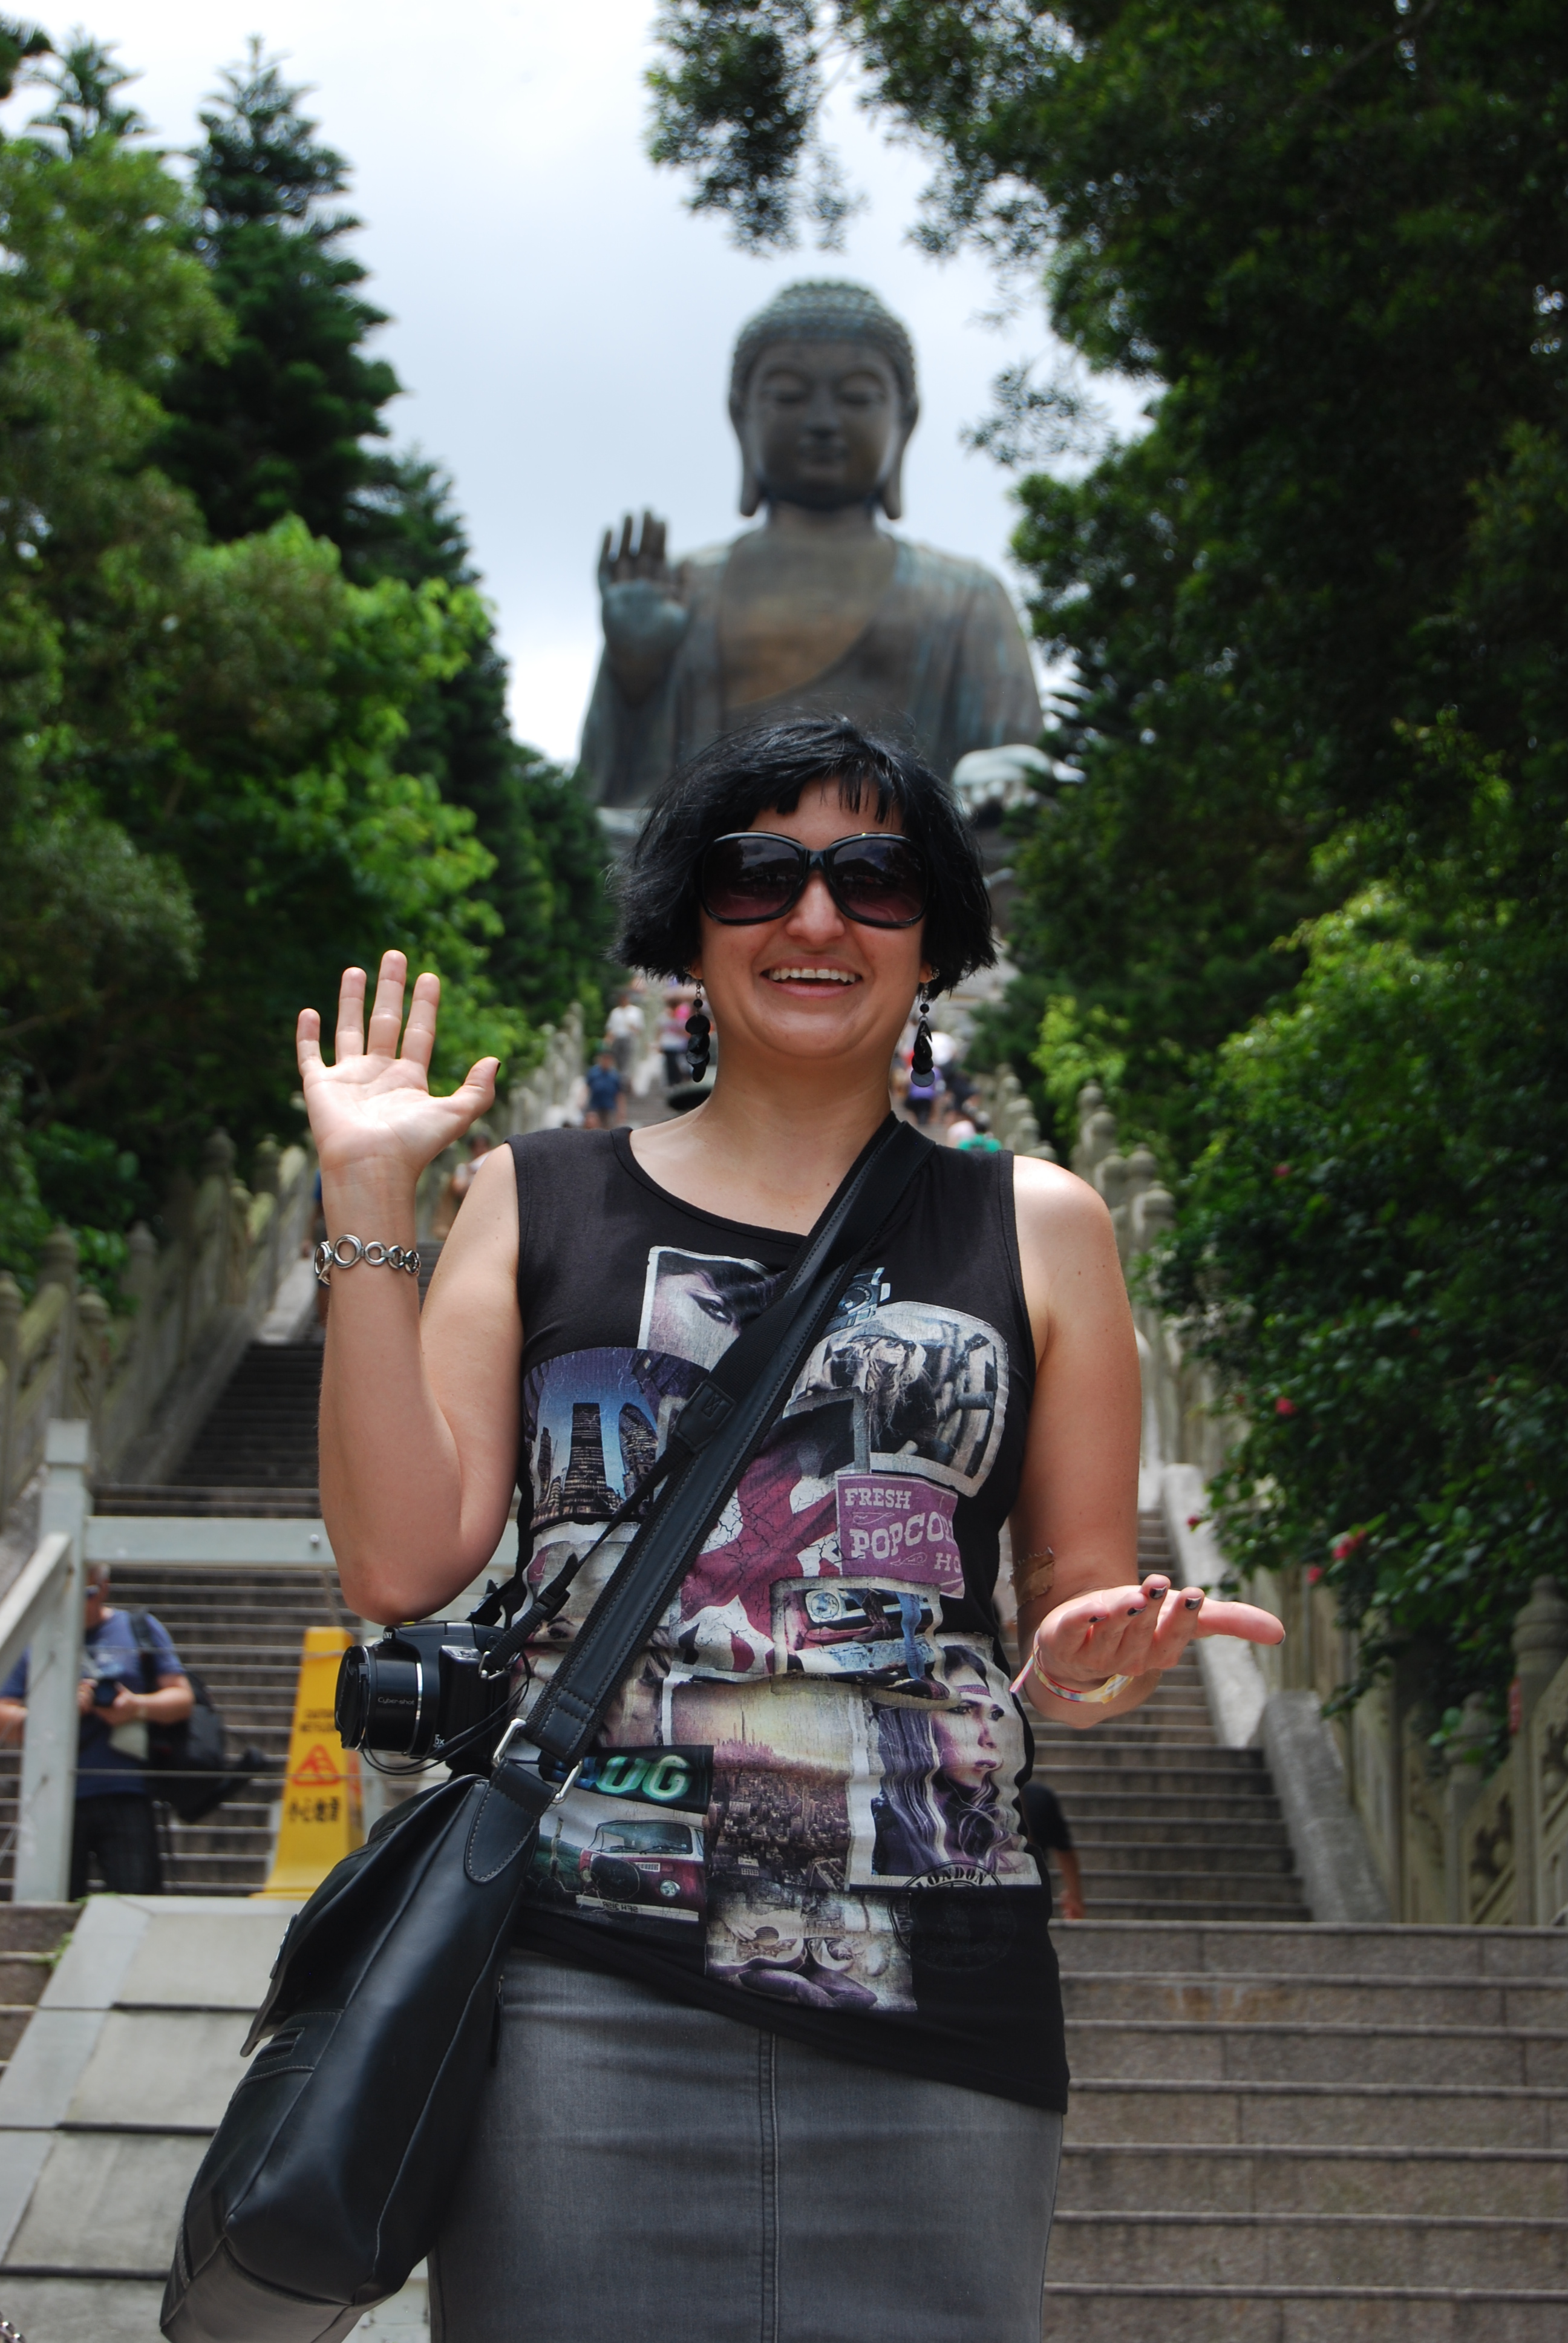 Lantau Giant Buddha and Po Lin Monastery of Hong Kong.